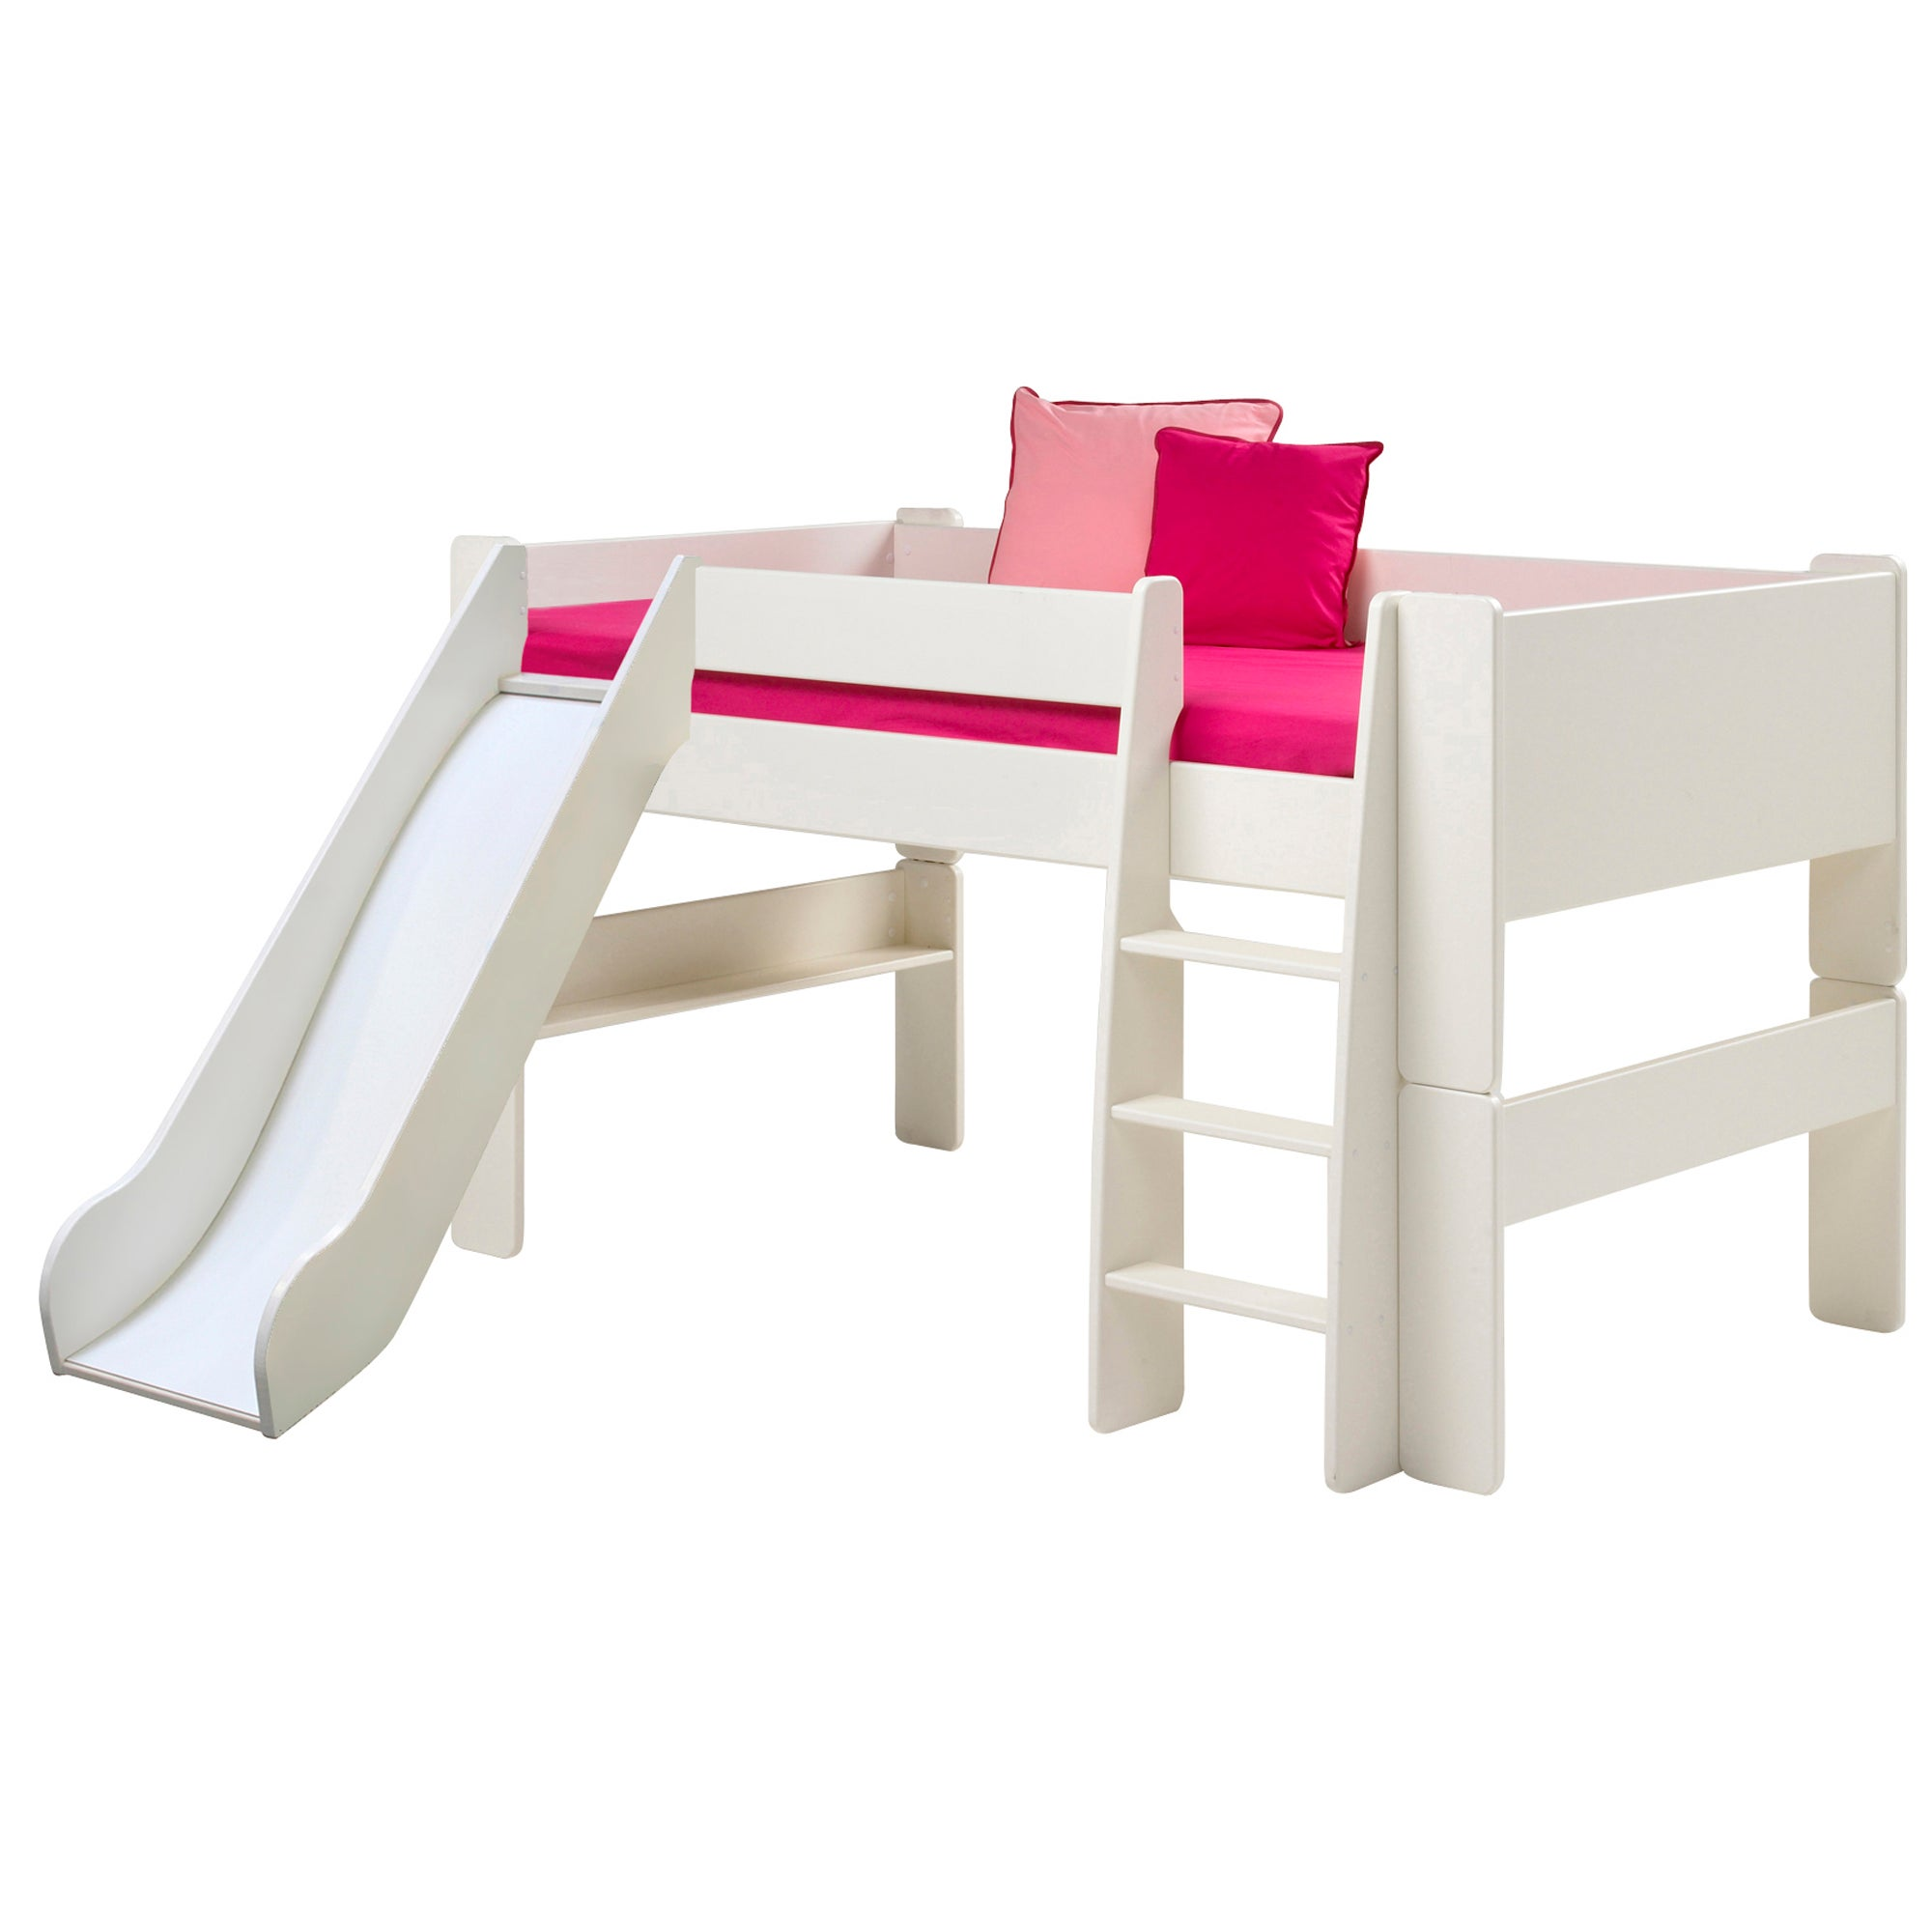 Kids Harper White Mid Sleeper Bed Frame with Slide